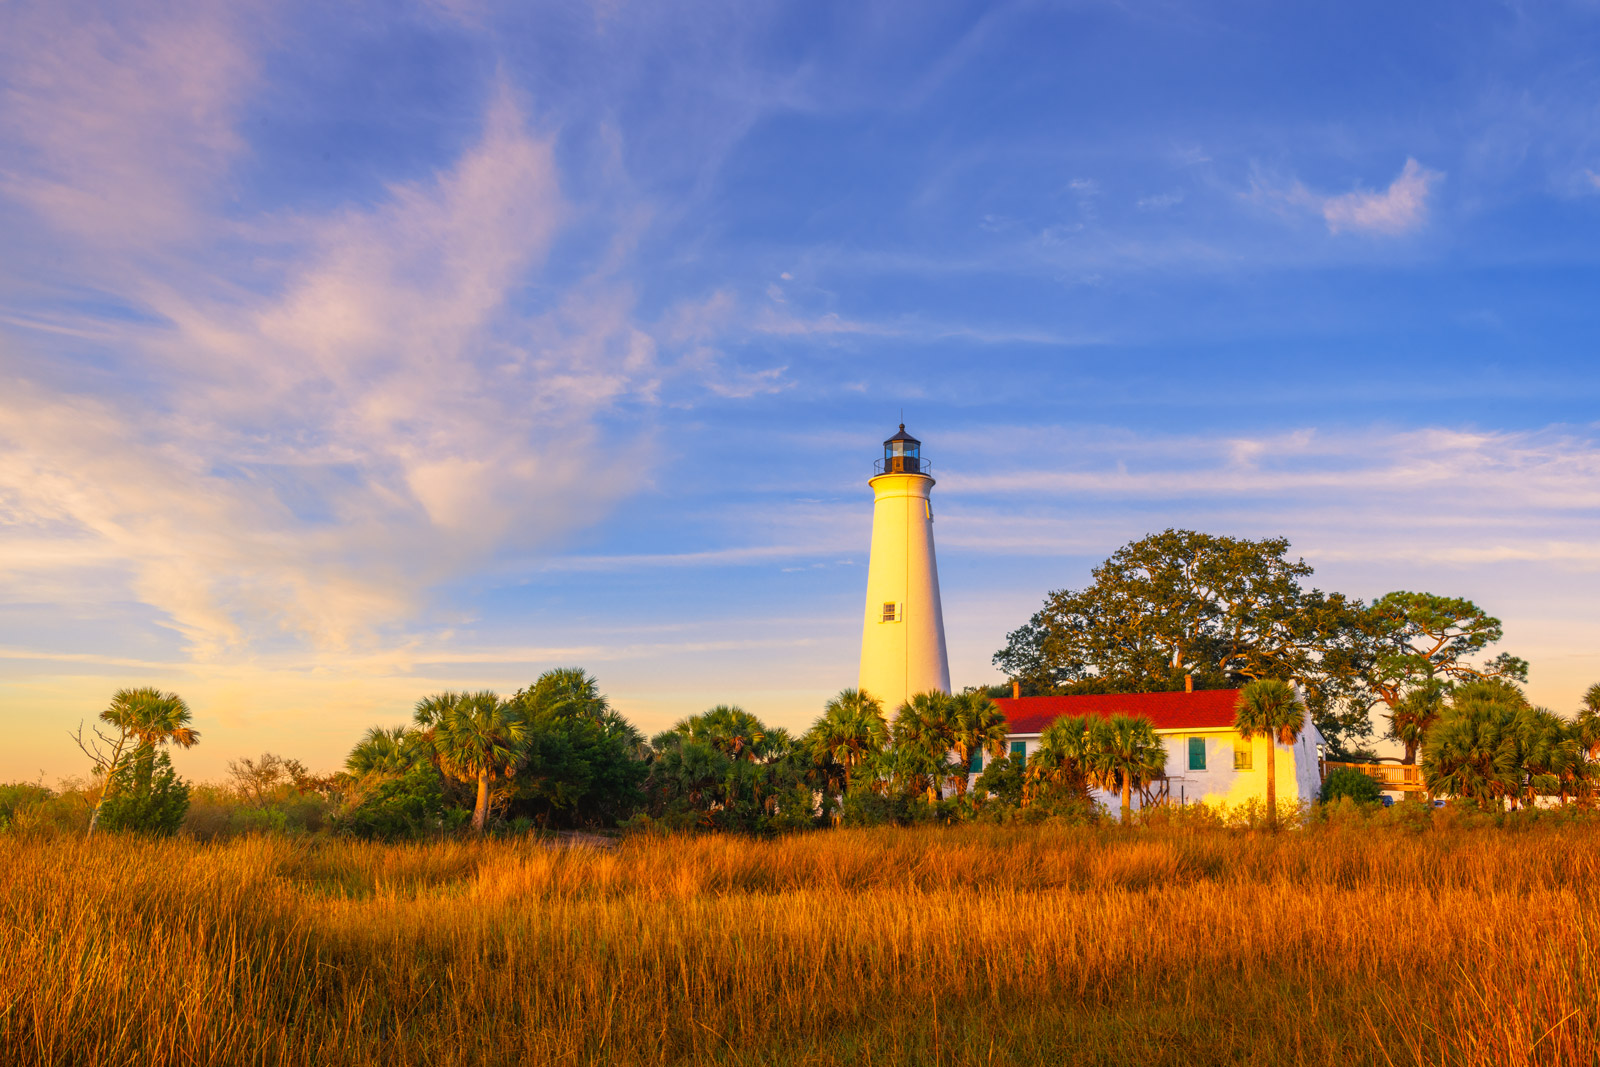 A Limited Edition, Fine Art photograph of sunrise on the St. Marks Lighthouse on the Florida panhandle. Available as a Fine Art...